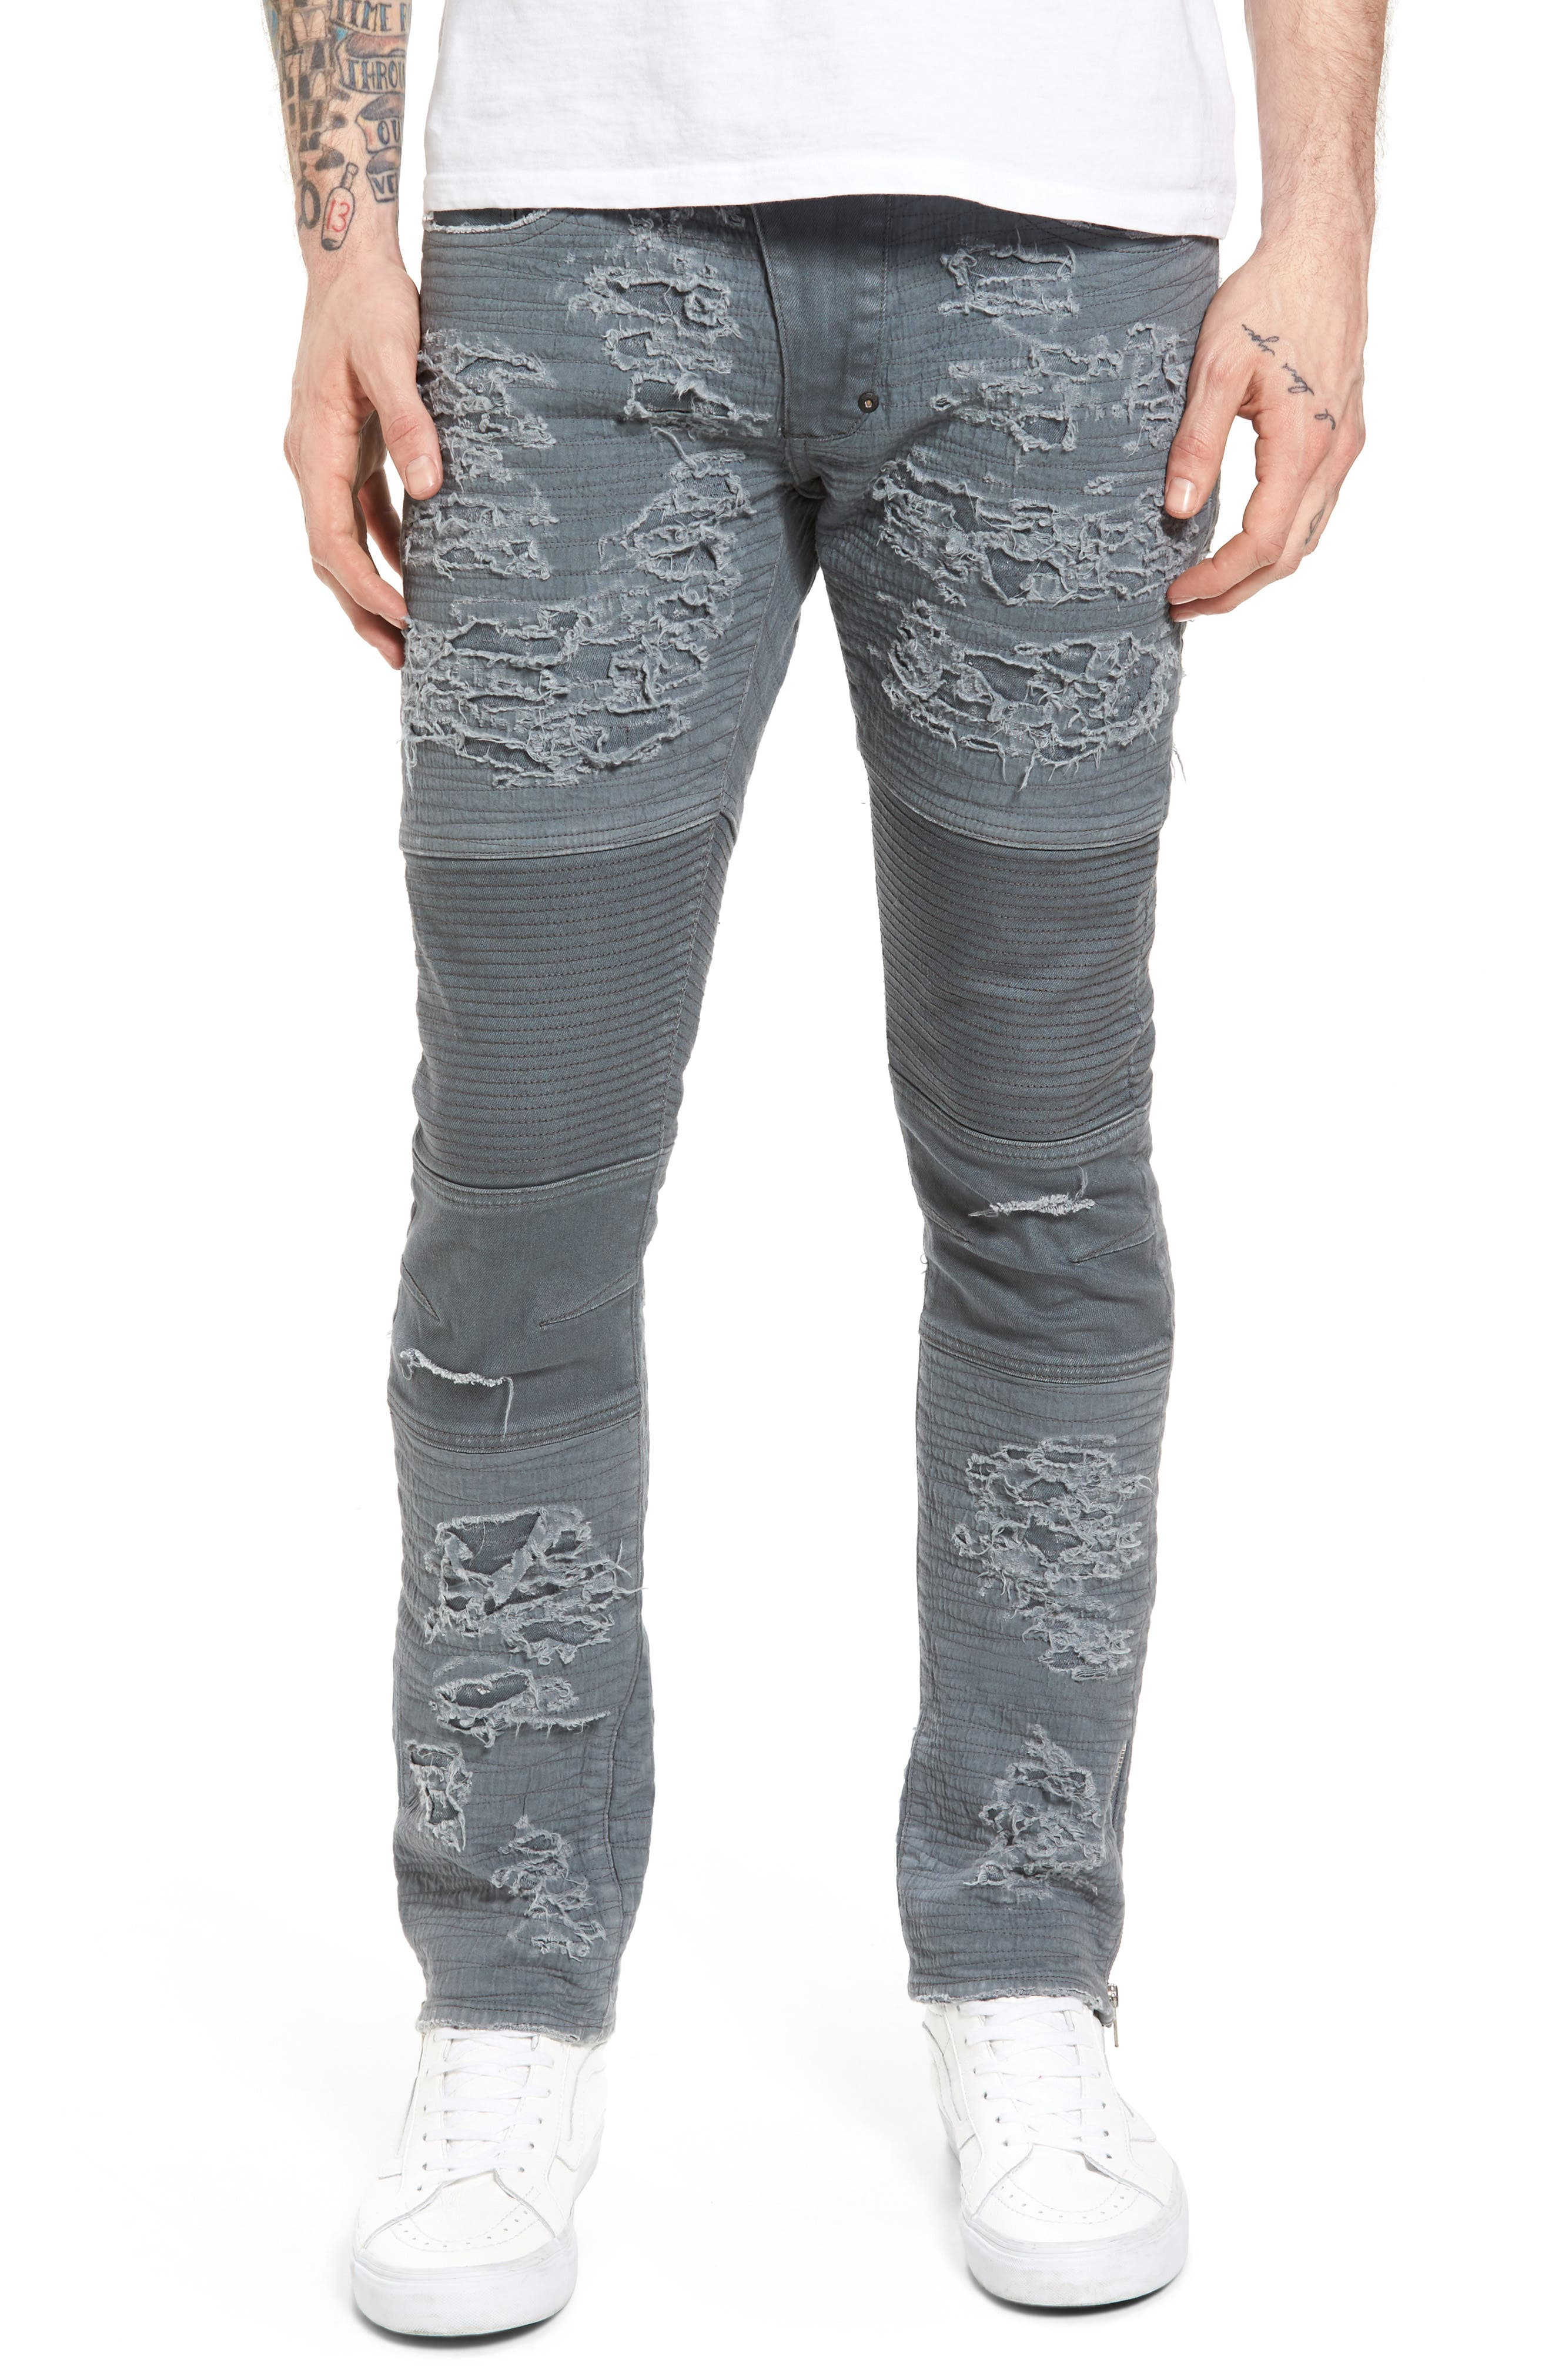 Windsor Slim Fit Jeans,                         Main,                         color, Dark Grey